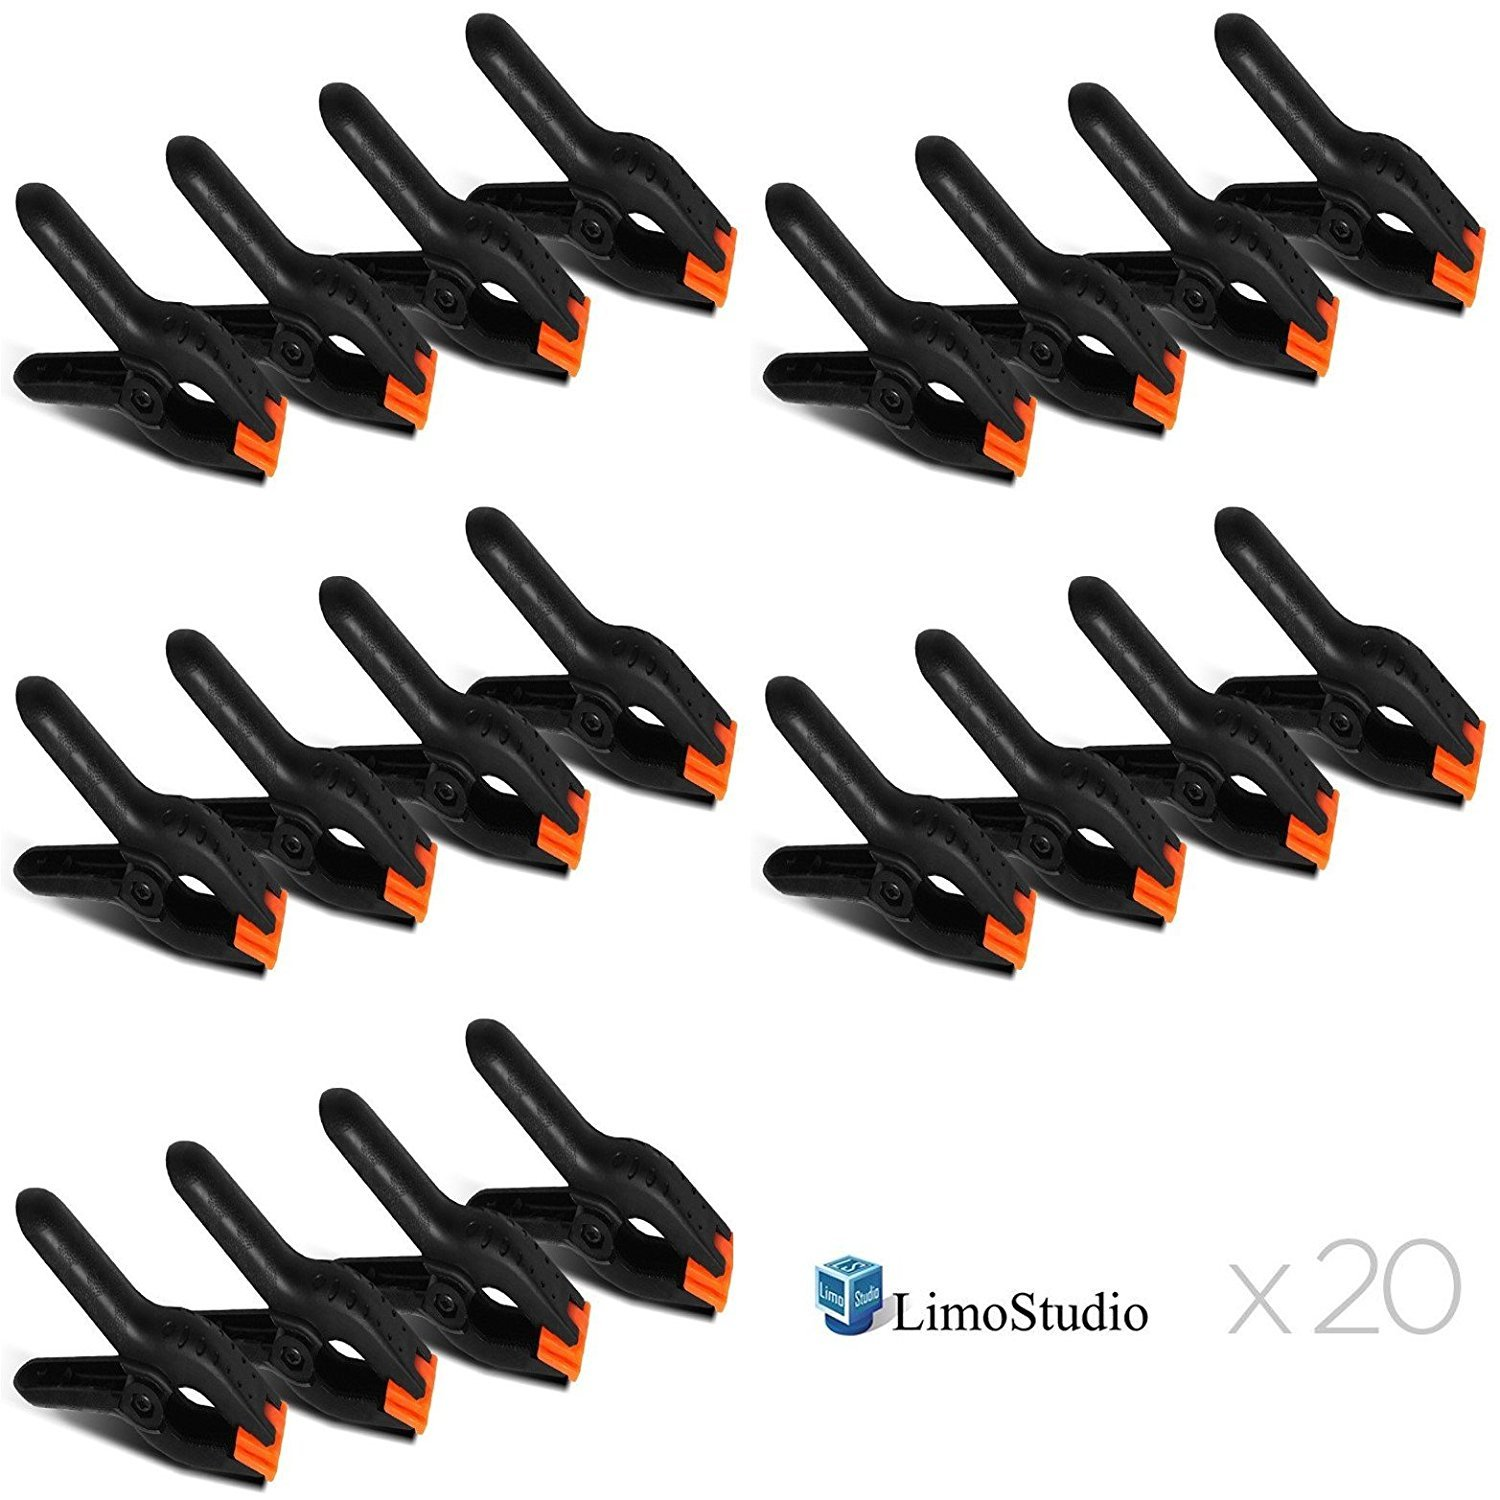 LimoStudio 20 PCS Photography Backdrop Support Spring Clamp for Background Muslin, Canvas, Paper, Chromakey Screen, Heavy Duty Clip, Photo Studio, AGG1424V2 by LimoStudio